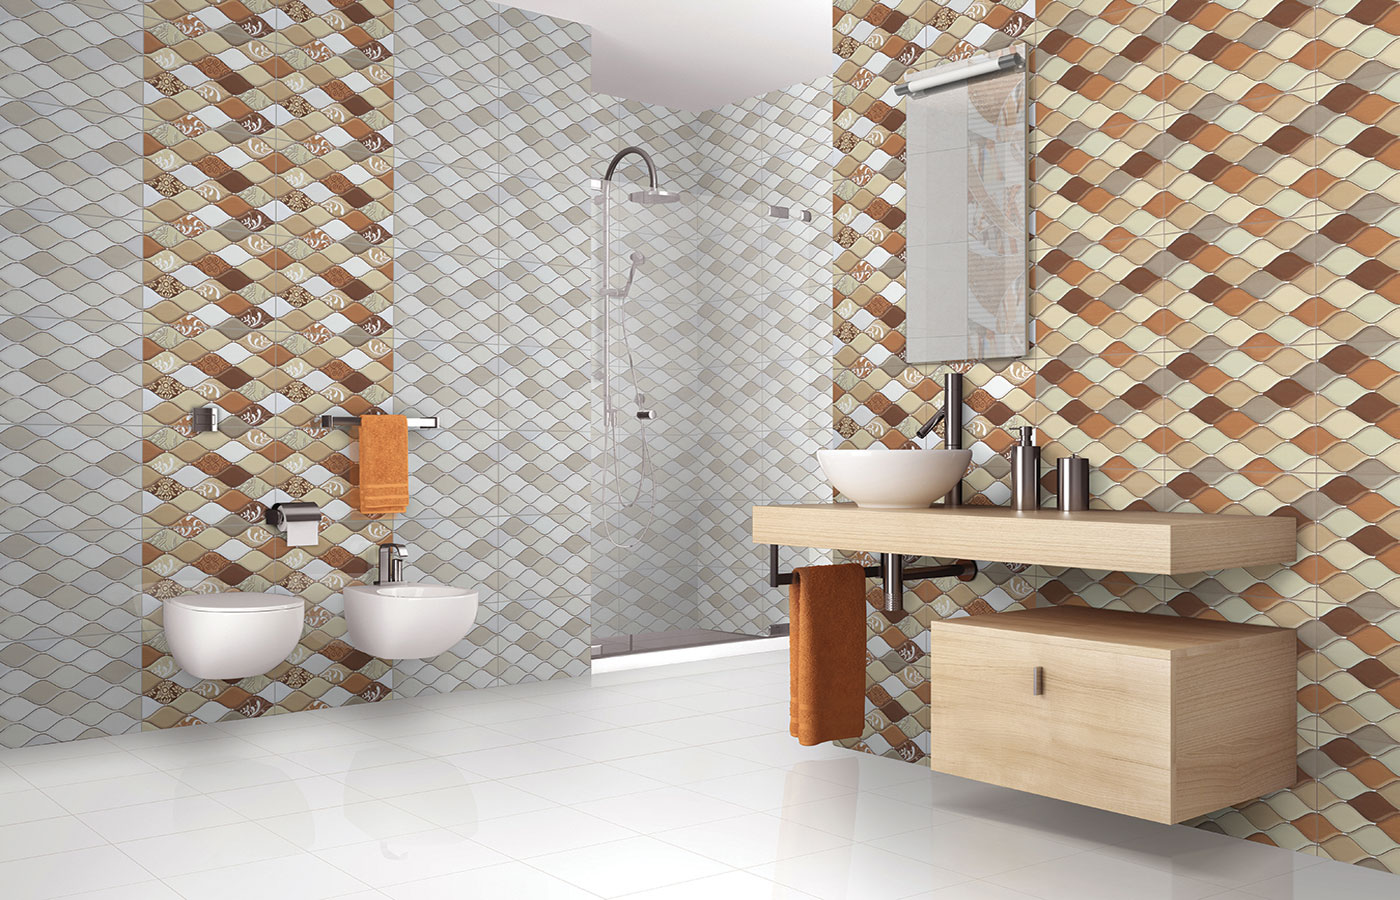 21 unique bathroom tile designs ideas and pictures 2019